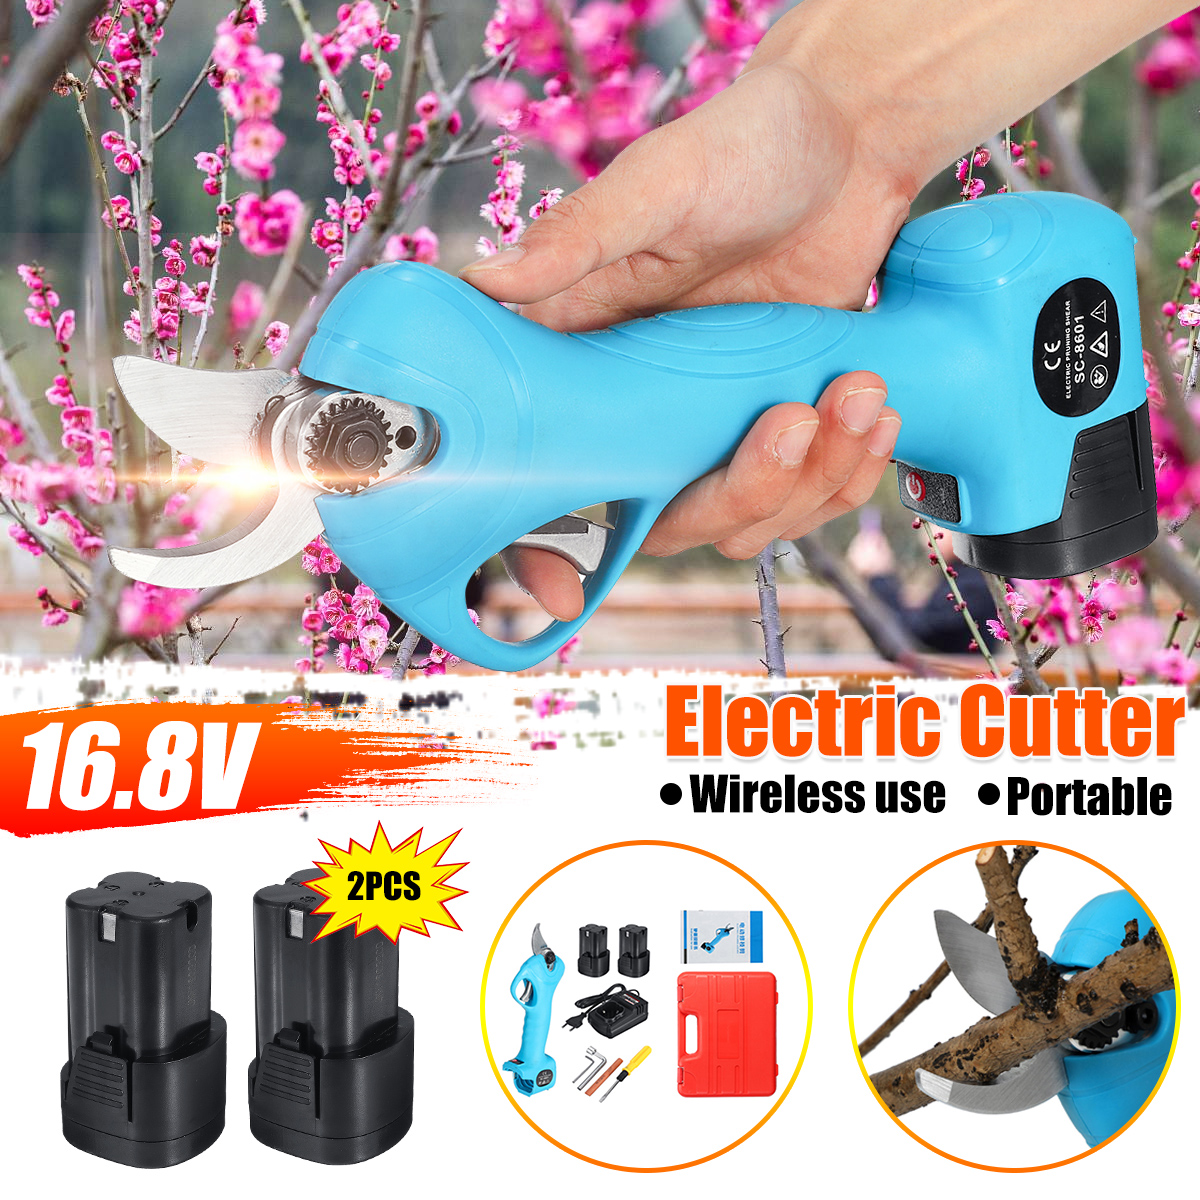 16.8V Li-ion Battery Cordless Secateur Branch Cutter Electric Fruit Pruning Tool Shear To Ol Fruit Power Tools